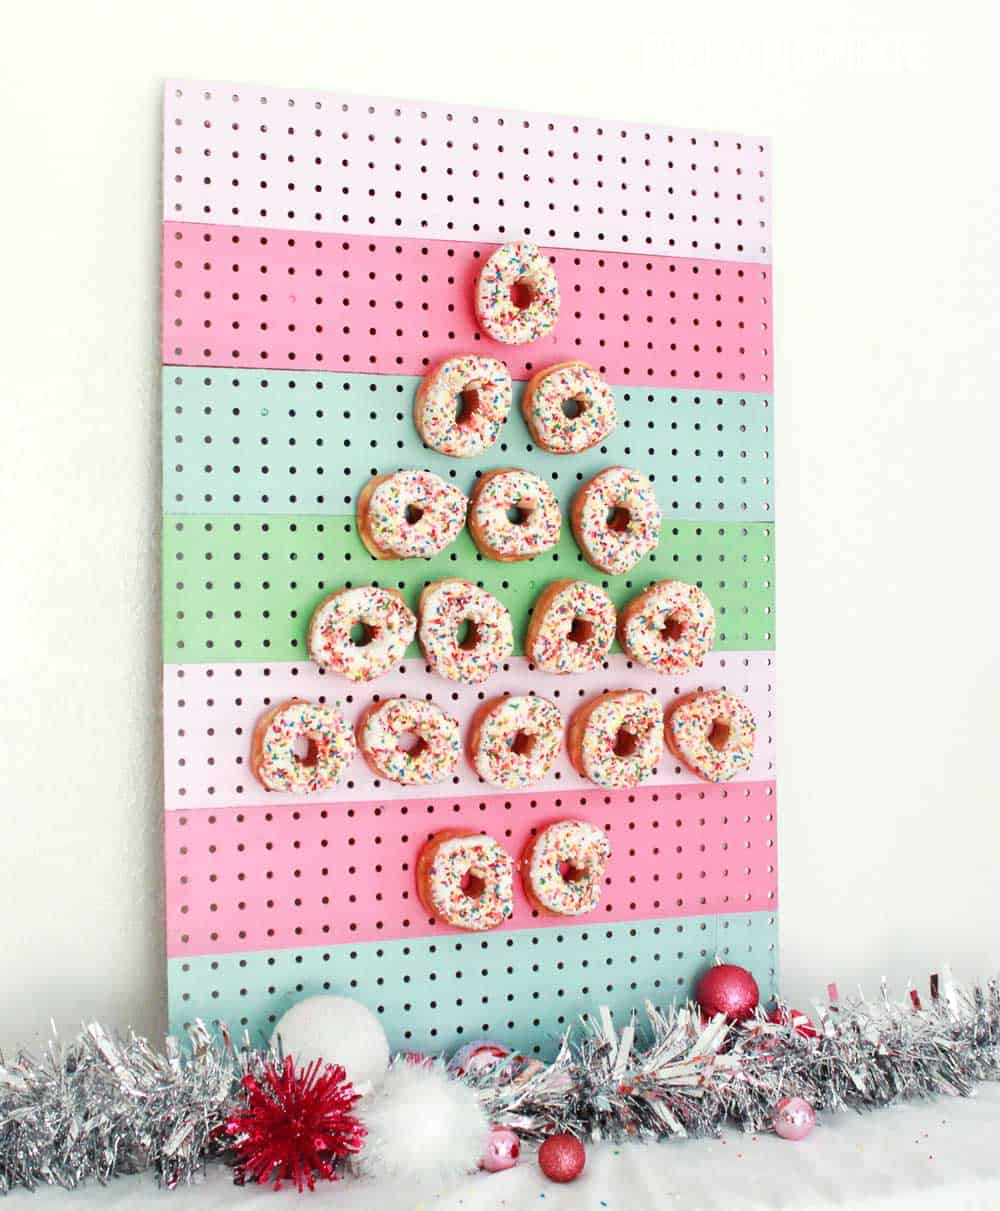 donut-display-party-1